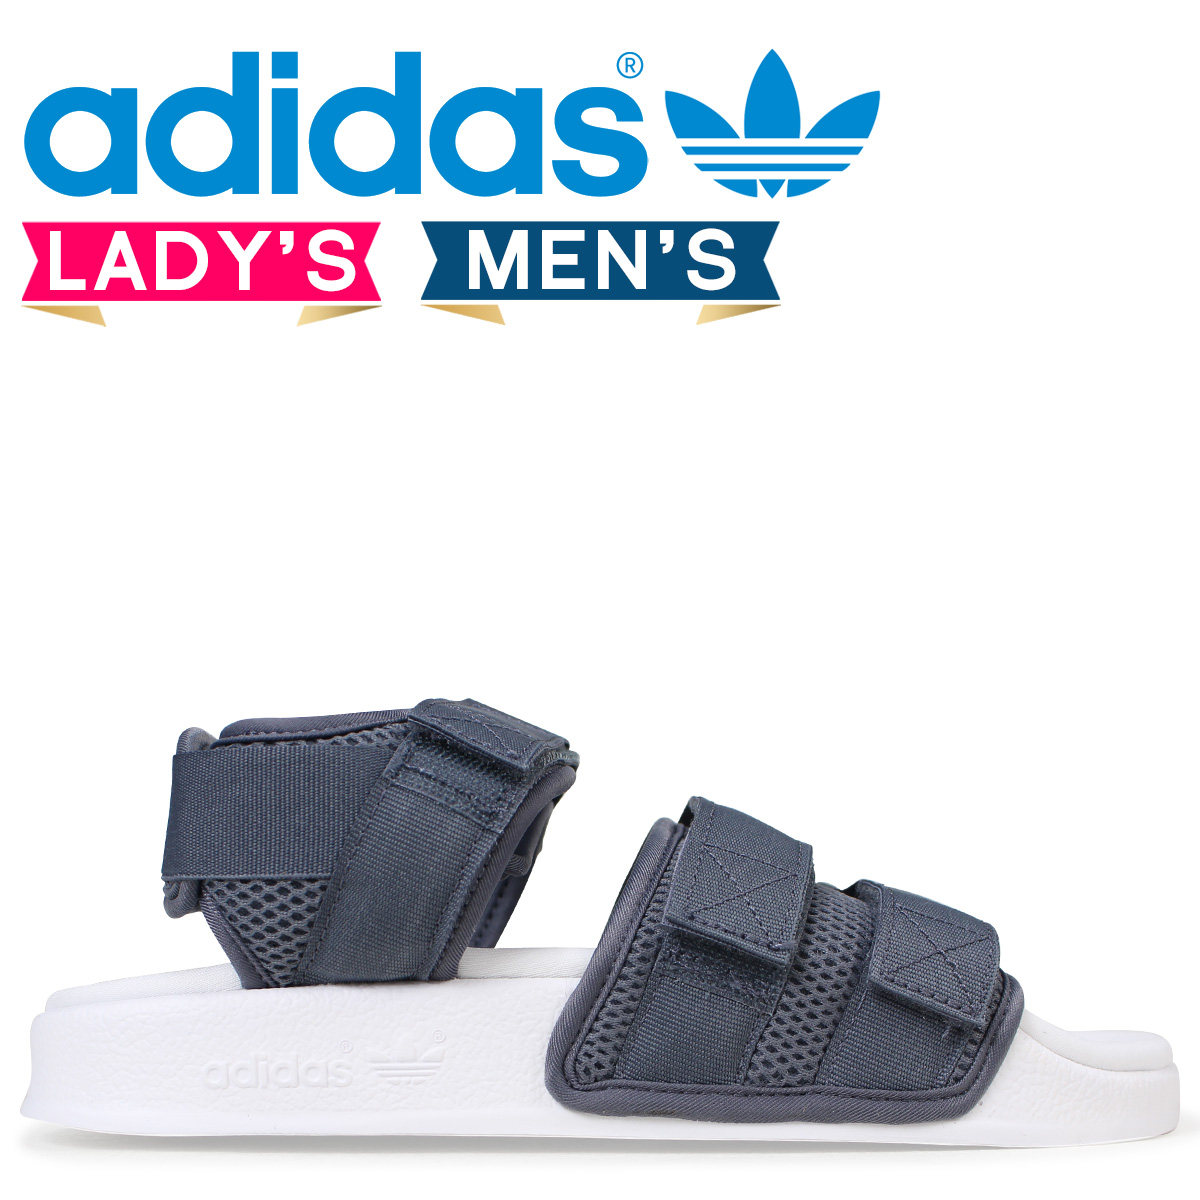 4b577be6f31b adidas Originals アディレッタアディダスサンダル ADILETTE SANDAL 2.0W lady s men s CQ2672  gray originals  load planned Shinnyu load in reservation product ...